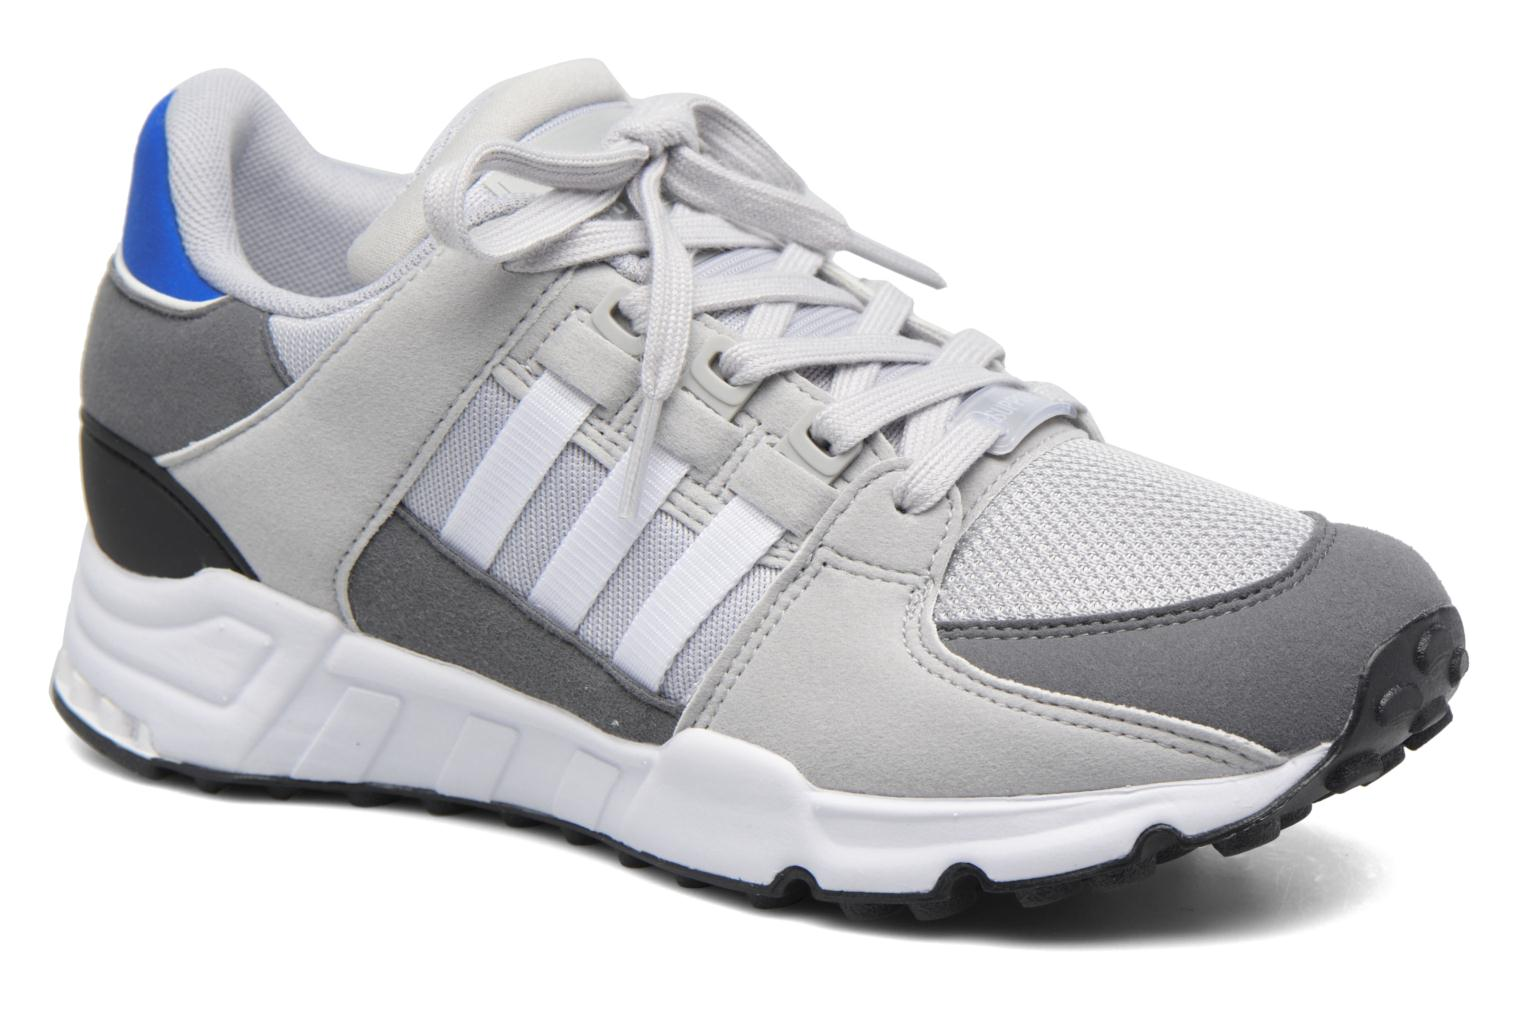 Turbo/Noiess/Ftwbla Adidas Originals Eqt Support J (Rose)